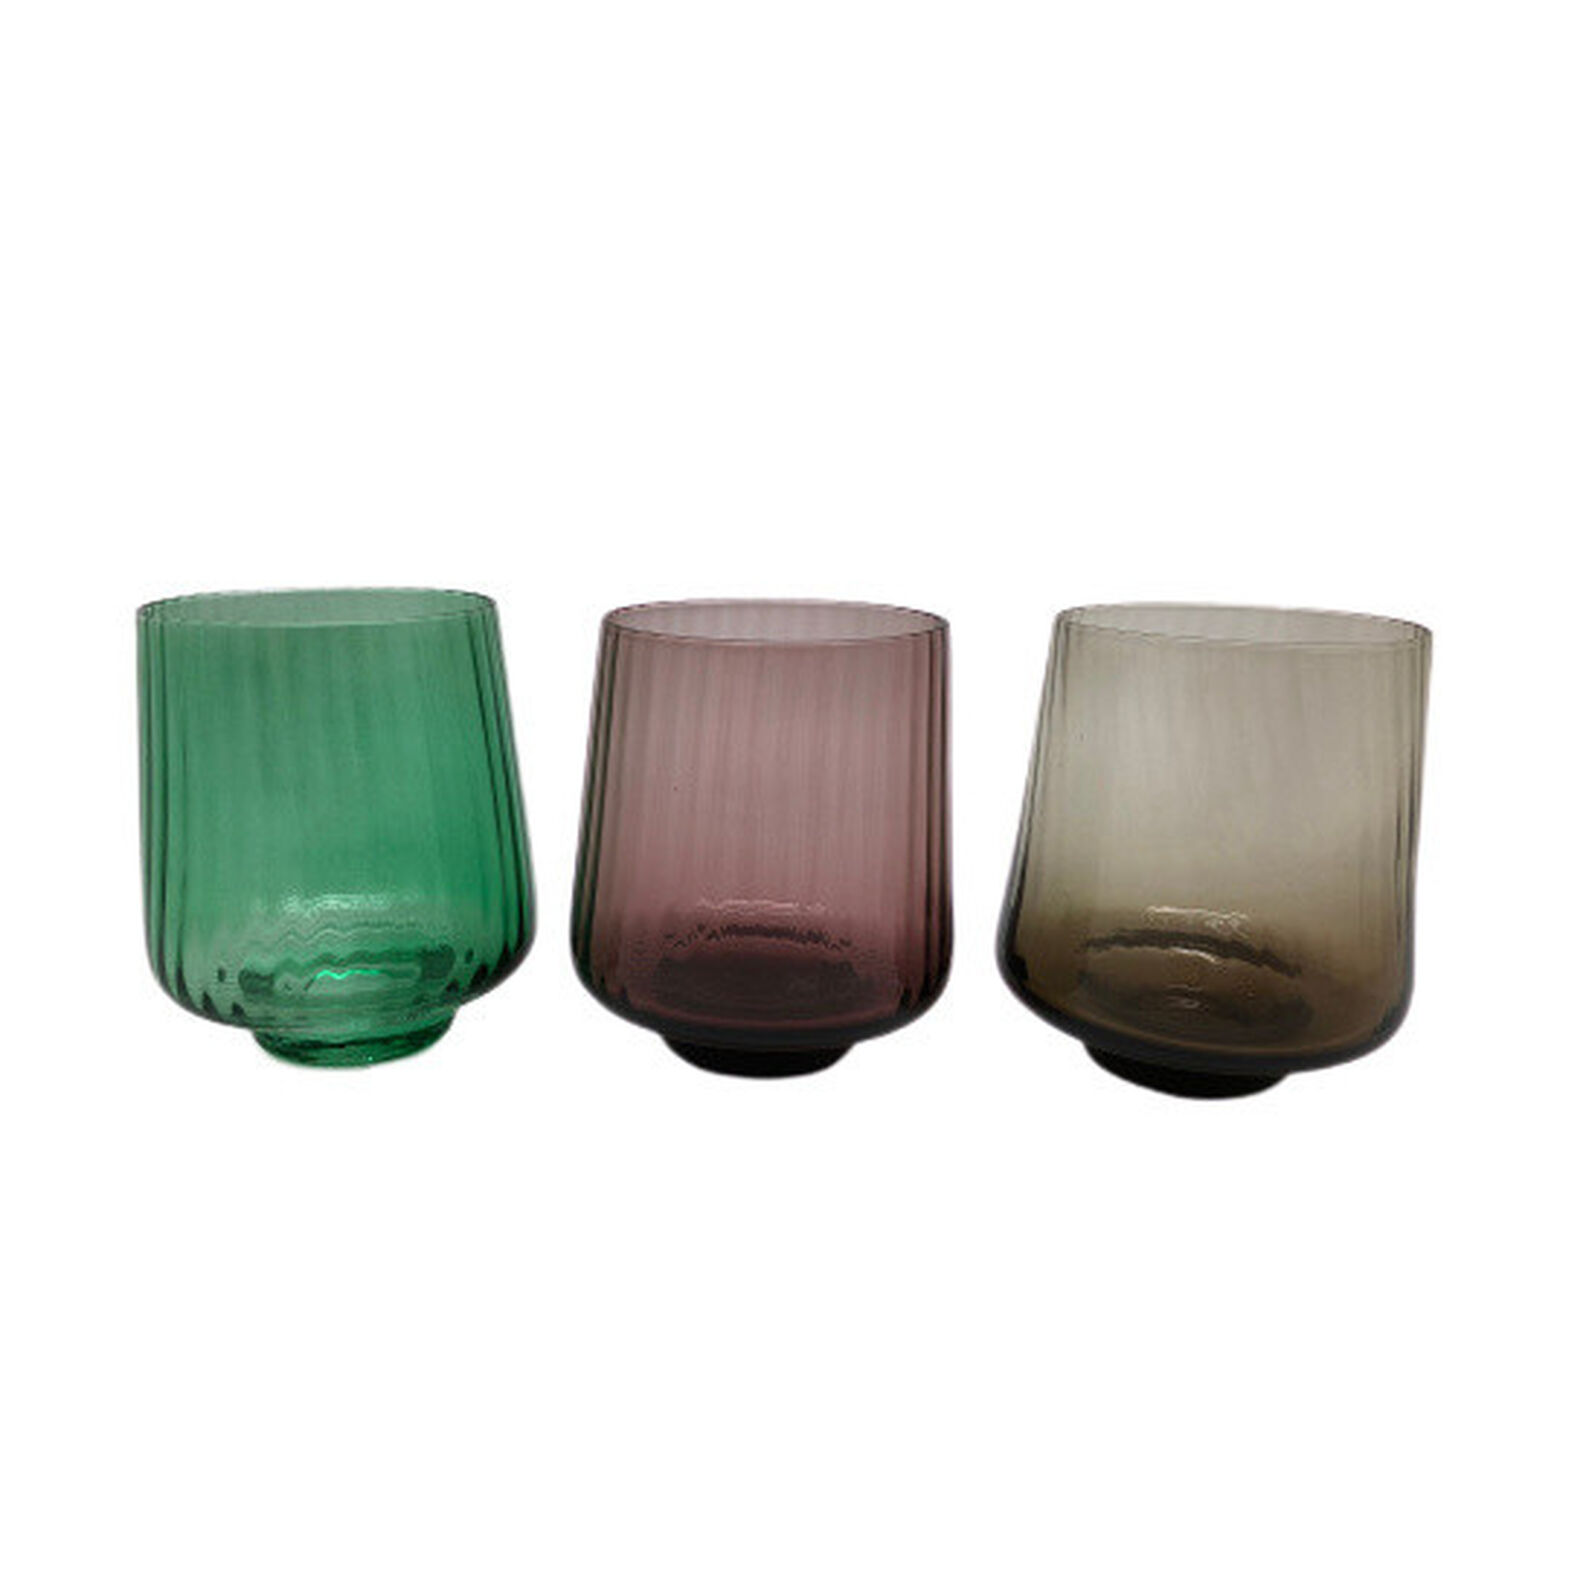 Coloured optical glass water tumblers